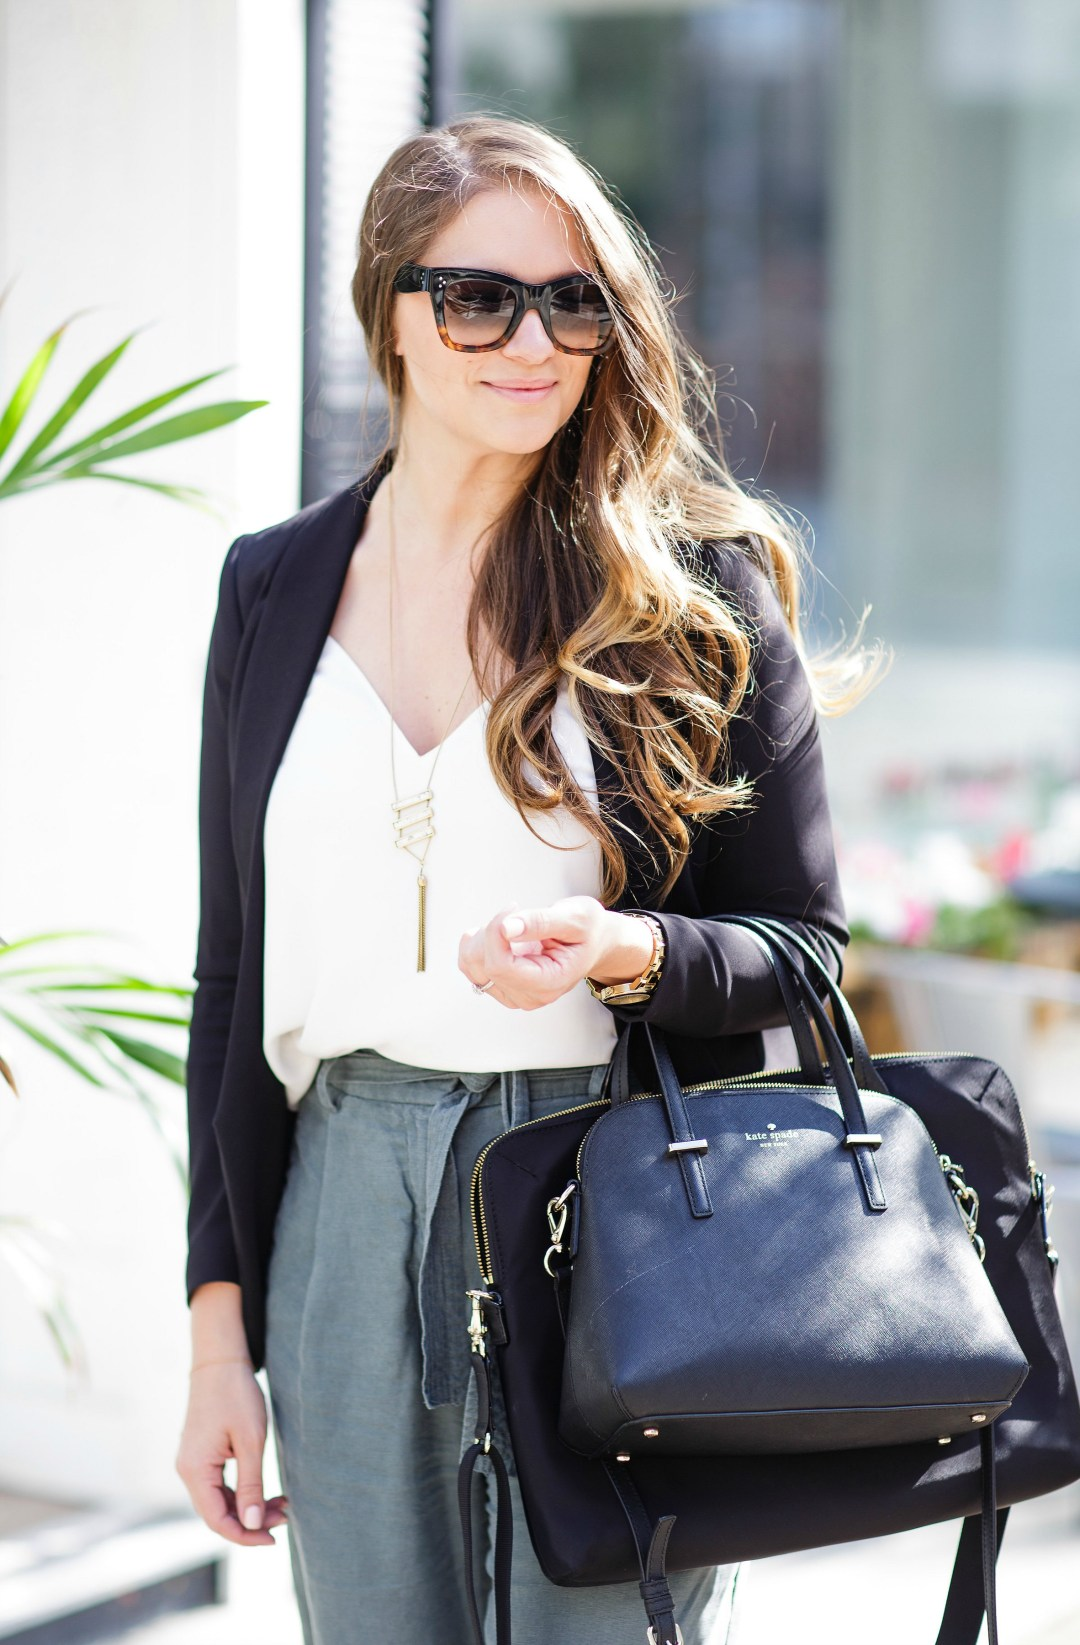 working-girl-office-outfit-wide-leg-pants-black-blazer-celine-sunglasses-kate-spade-laptop-bag-rosecitystyleguide-canadian-blogger-9